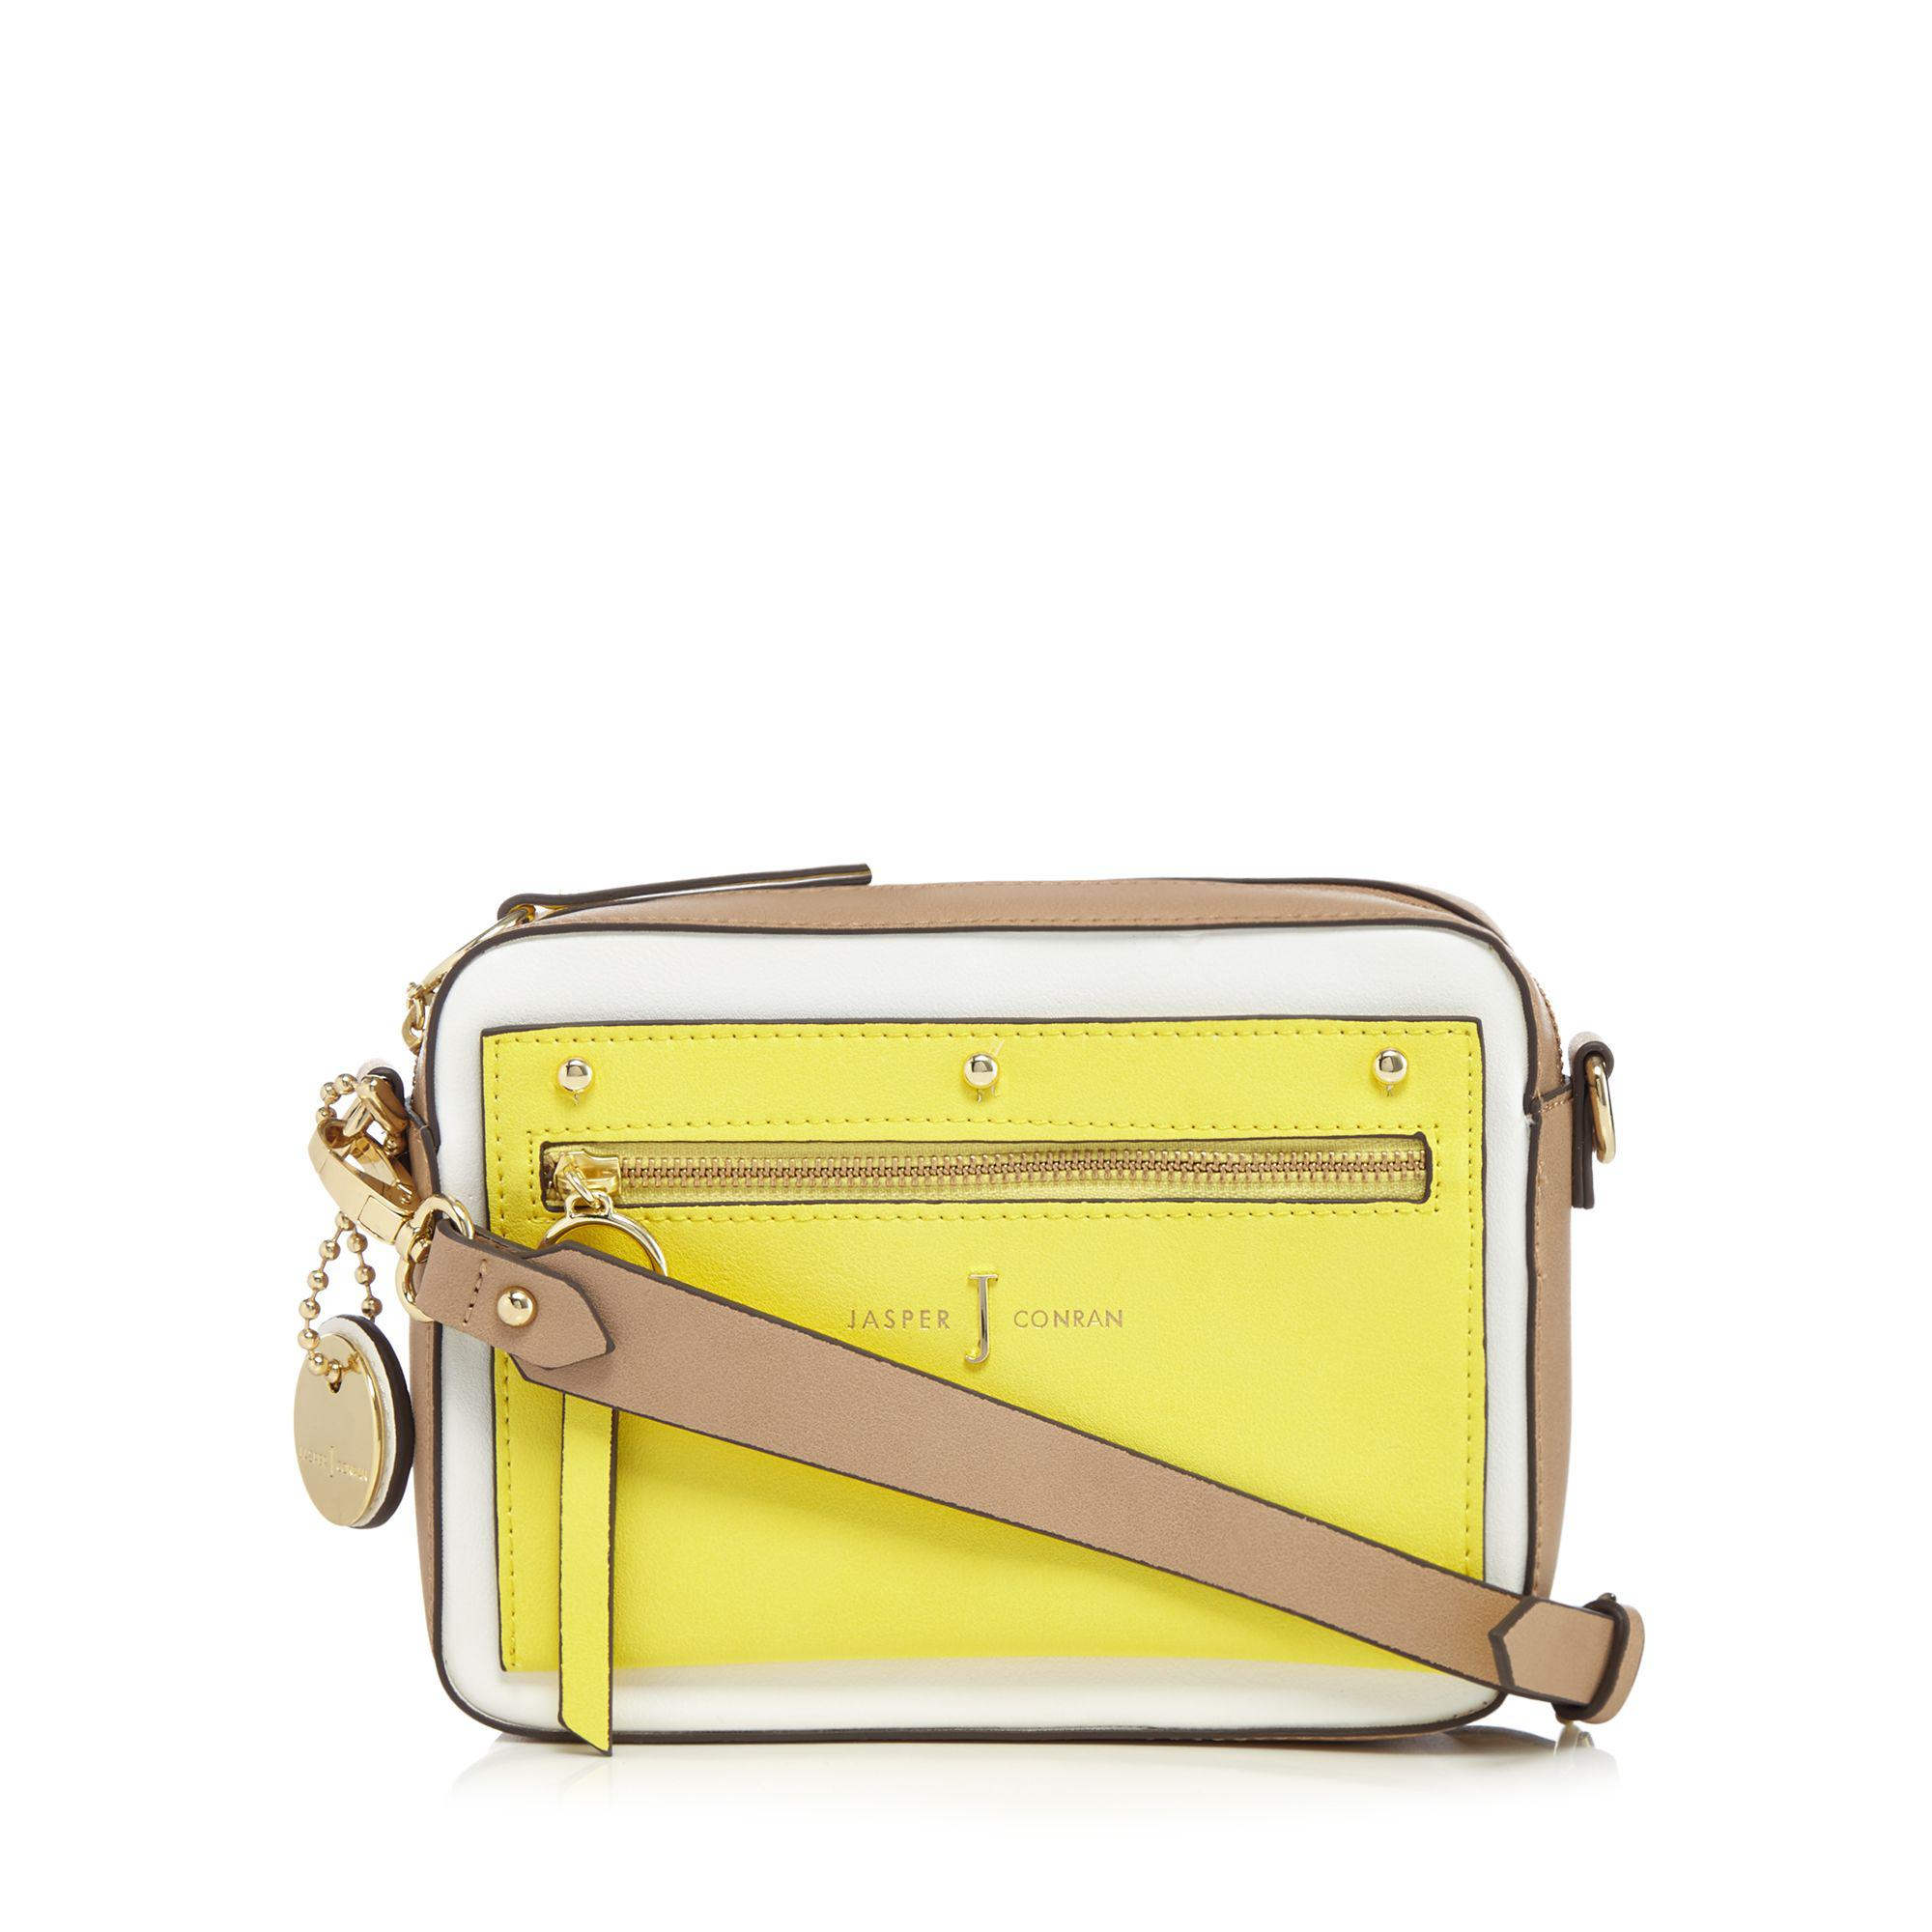 4c33f3a8f0 J By Jasper Conran Yellow Colour Block Small Grab Bag in Yellow - Lyst